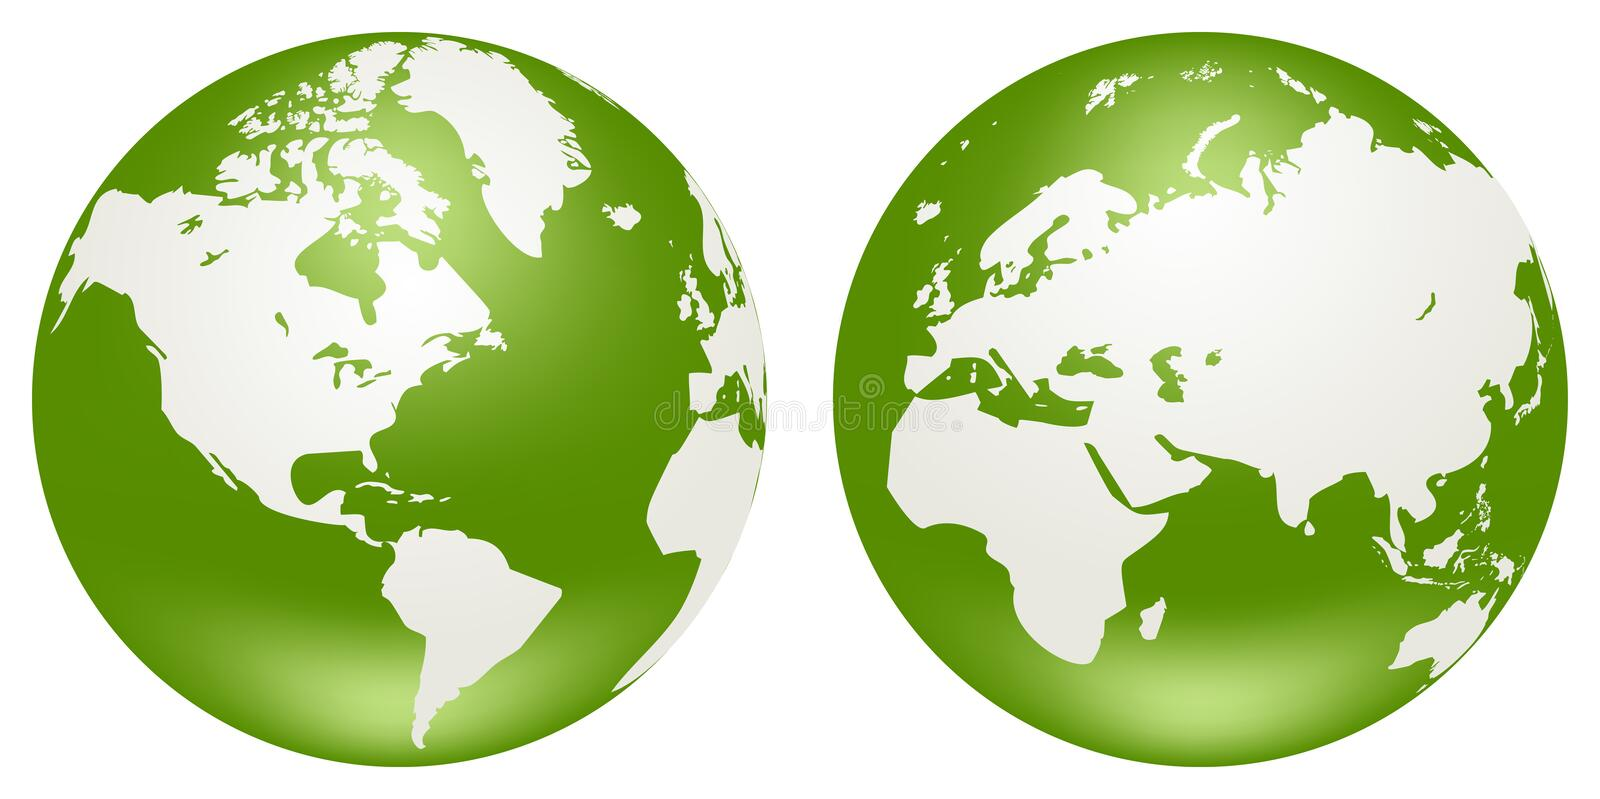 Globes of Earth. Two globes of Earth, isolated on a white